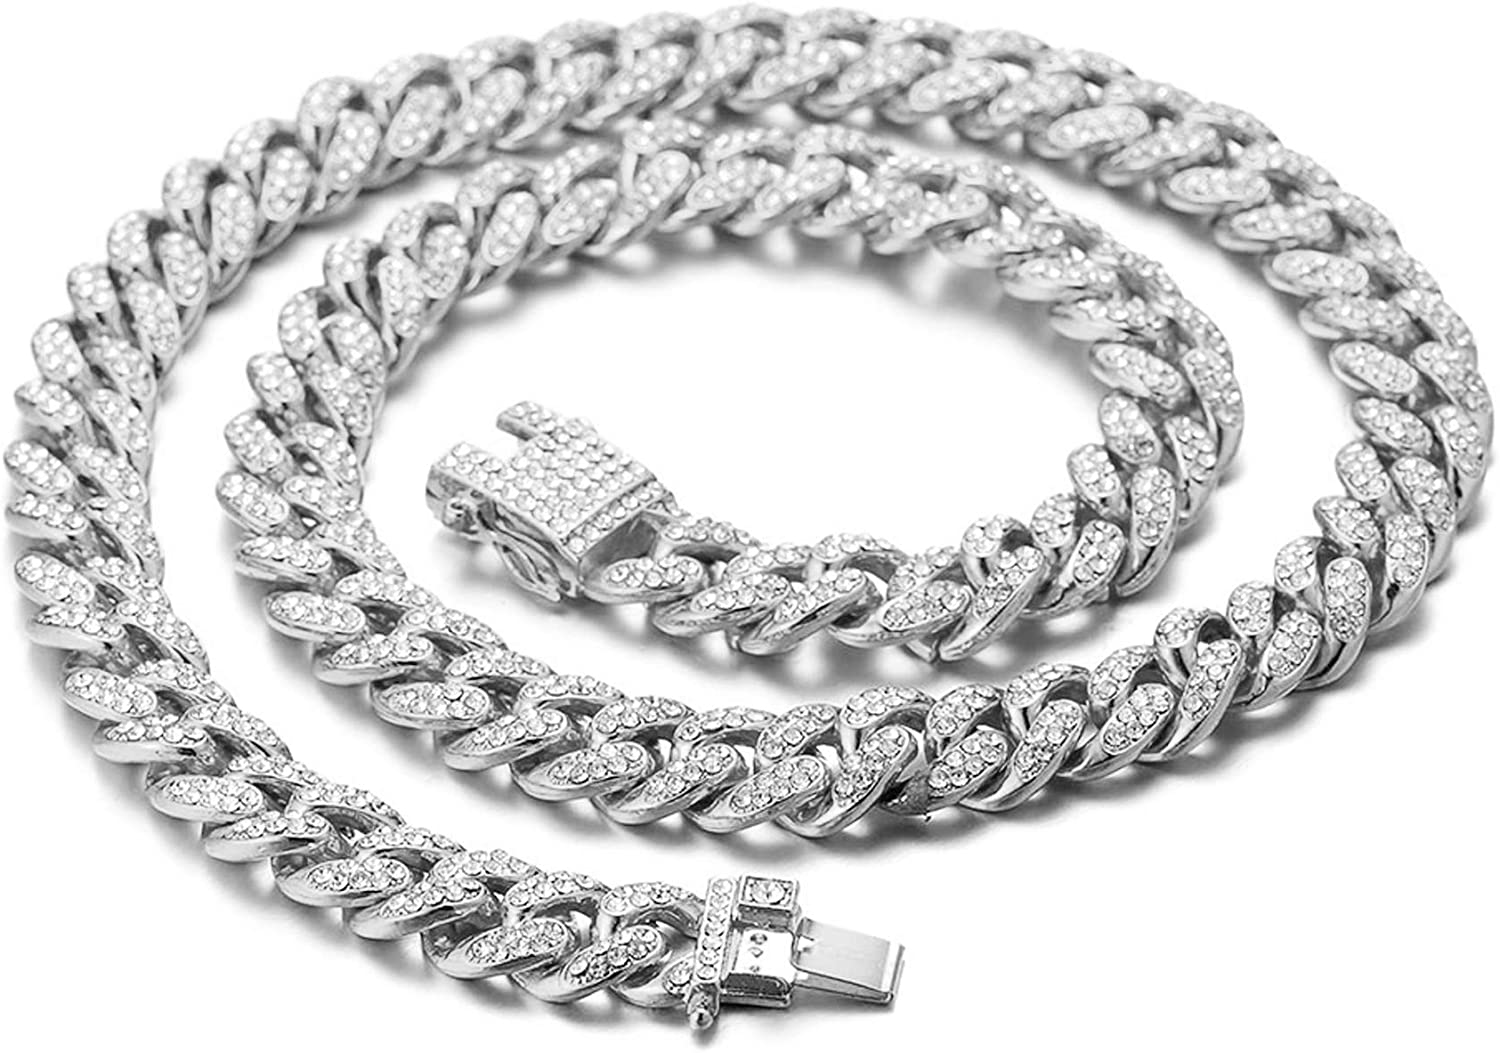 Halukakah Diamond Cuban Link Chain for Women Girl 13.5MM 18k Real Gold Plated/Platinum White Gold Finish Iced Out Choker Necklace Bracelet,Full Cz Diamond Cut Prong Set,with Giftbox